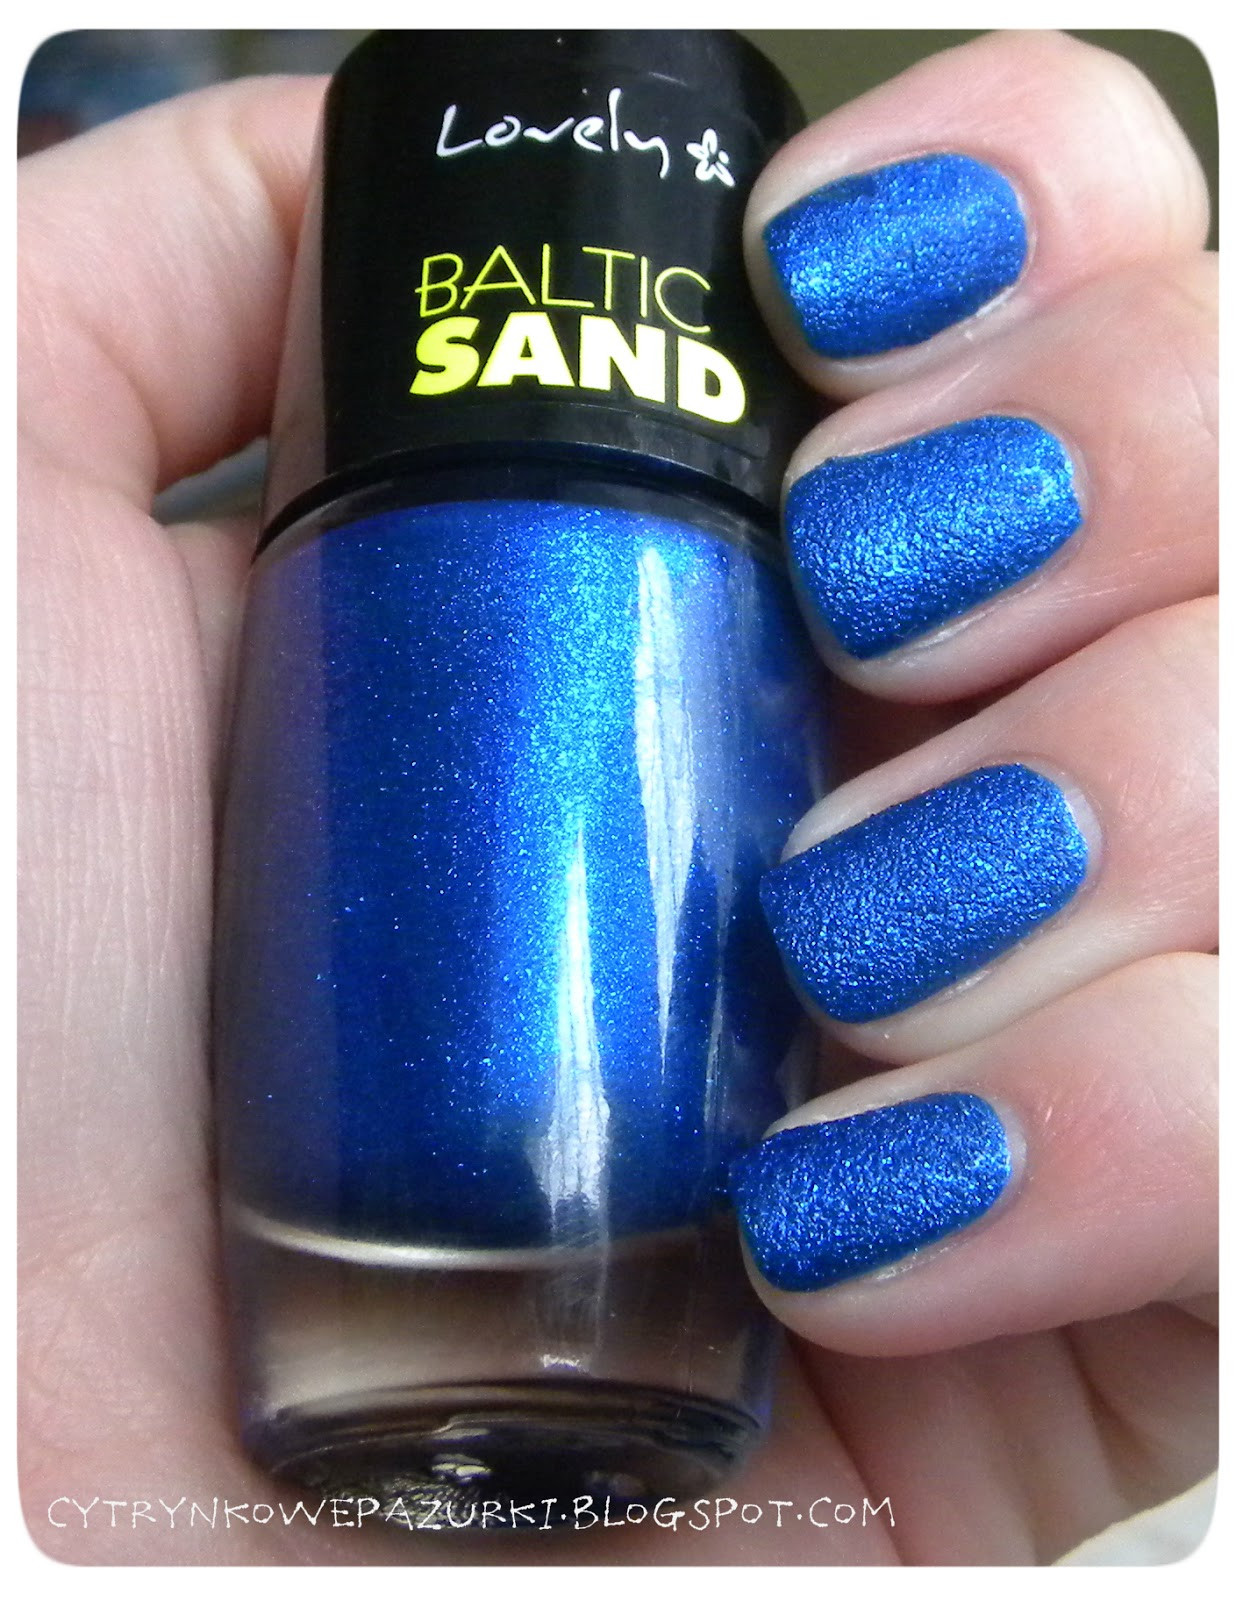 Lovely Baltic Sand nr 6